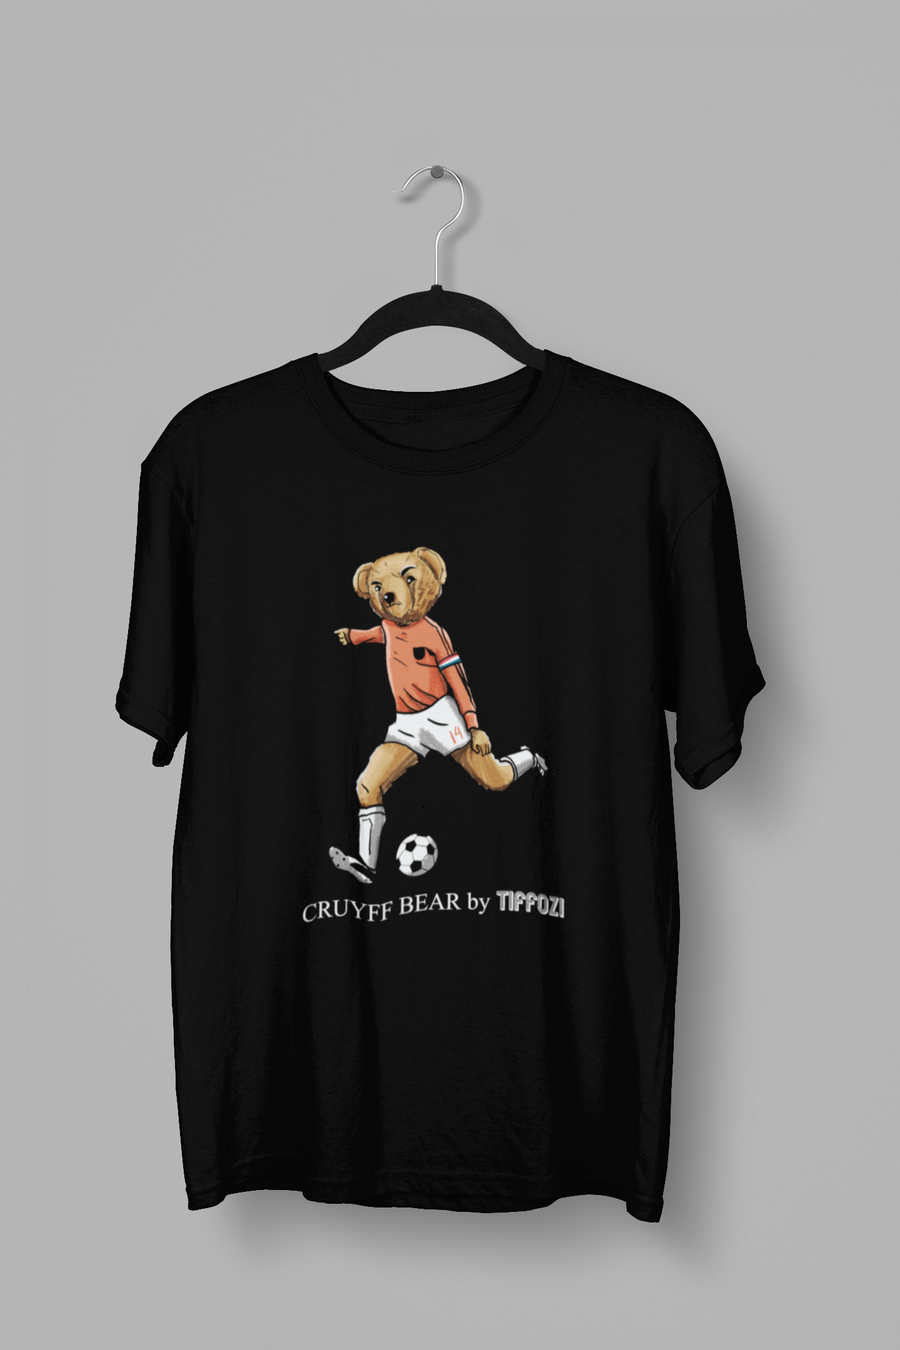 CRUYFF BEAR BY TIFFOZI